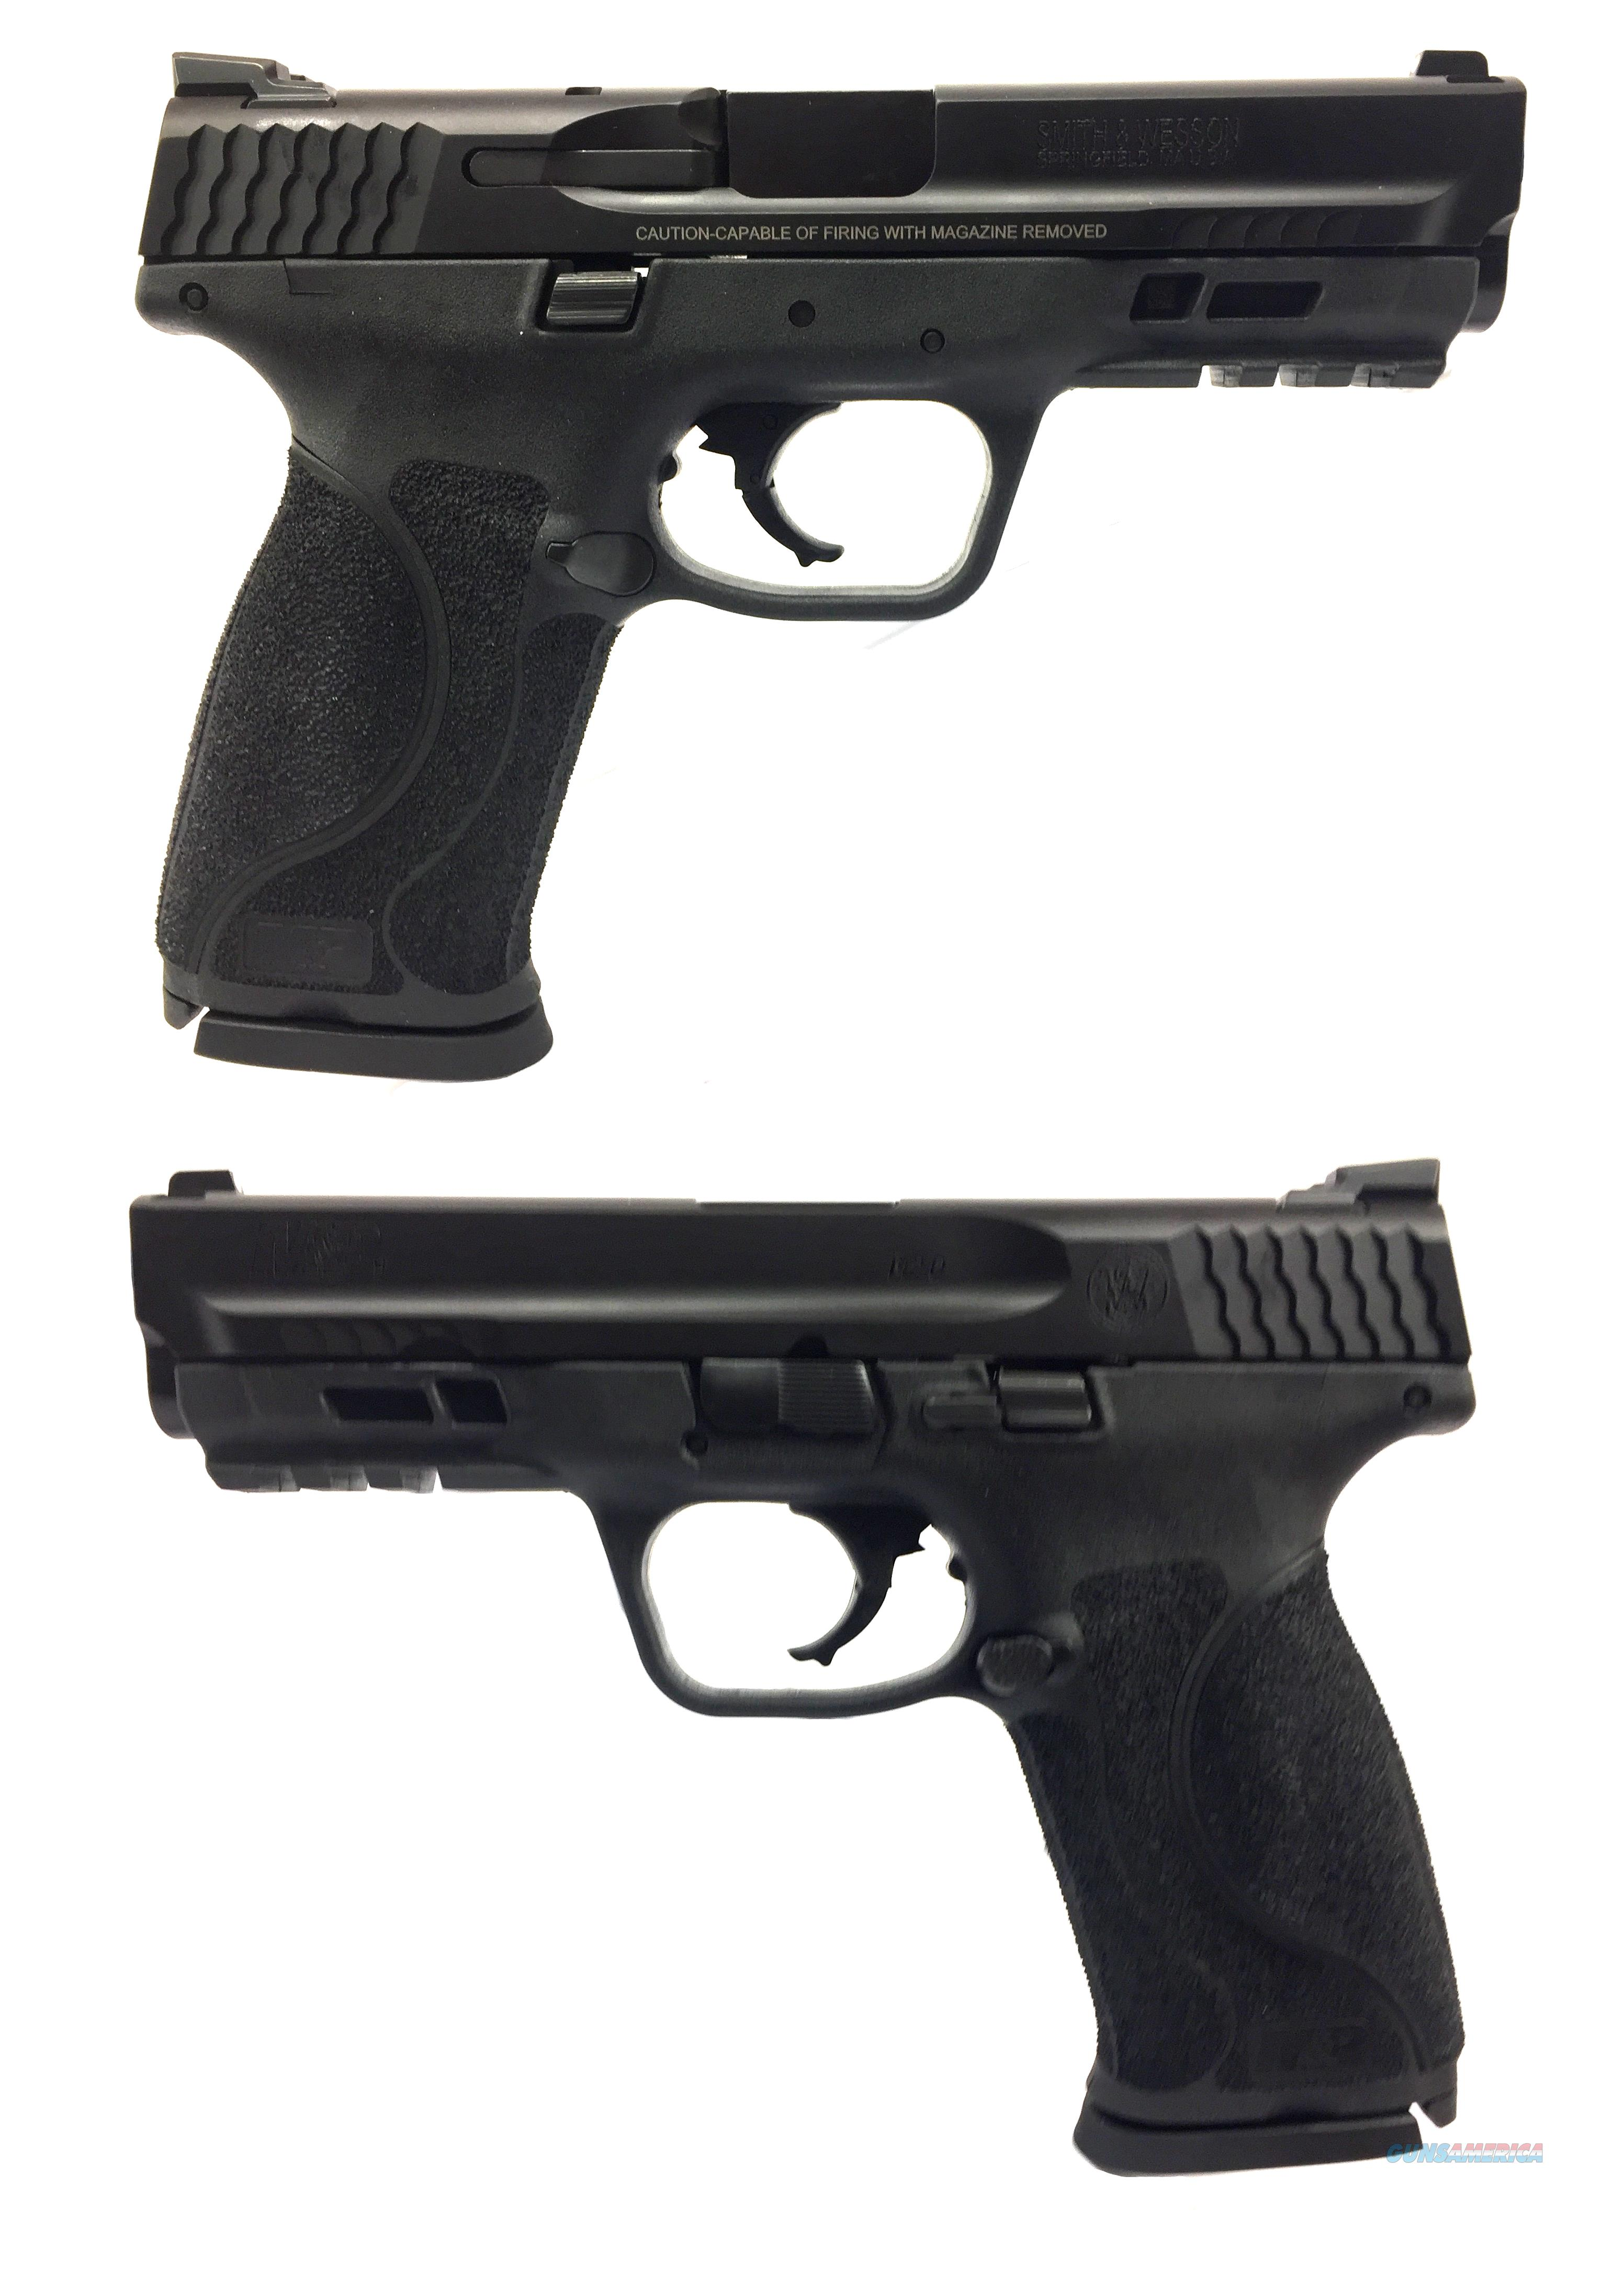 Smith & Wesson M&P 9 M2.0   Guns > Pistols > Smith & Wesson Pistols - Autos > Polymer Frame